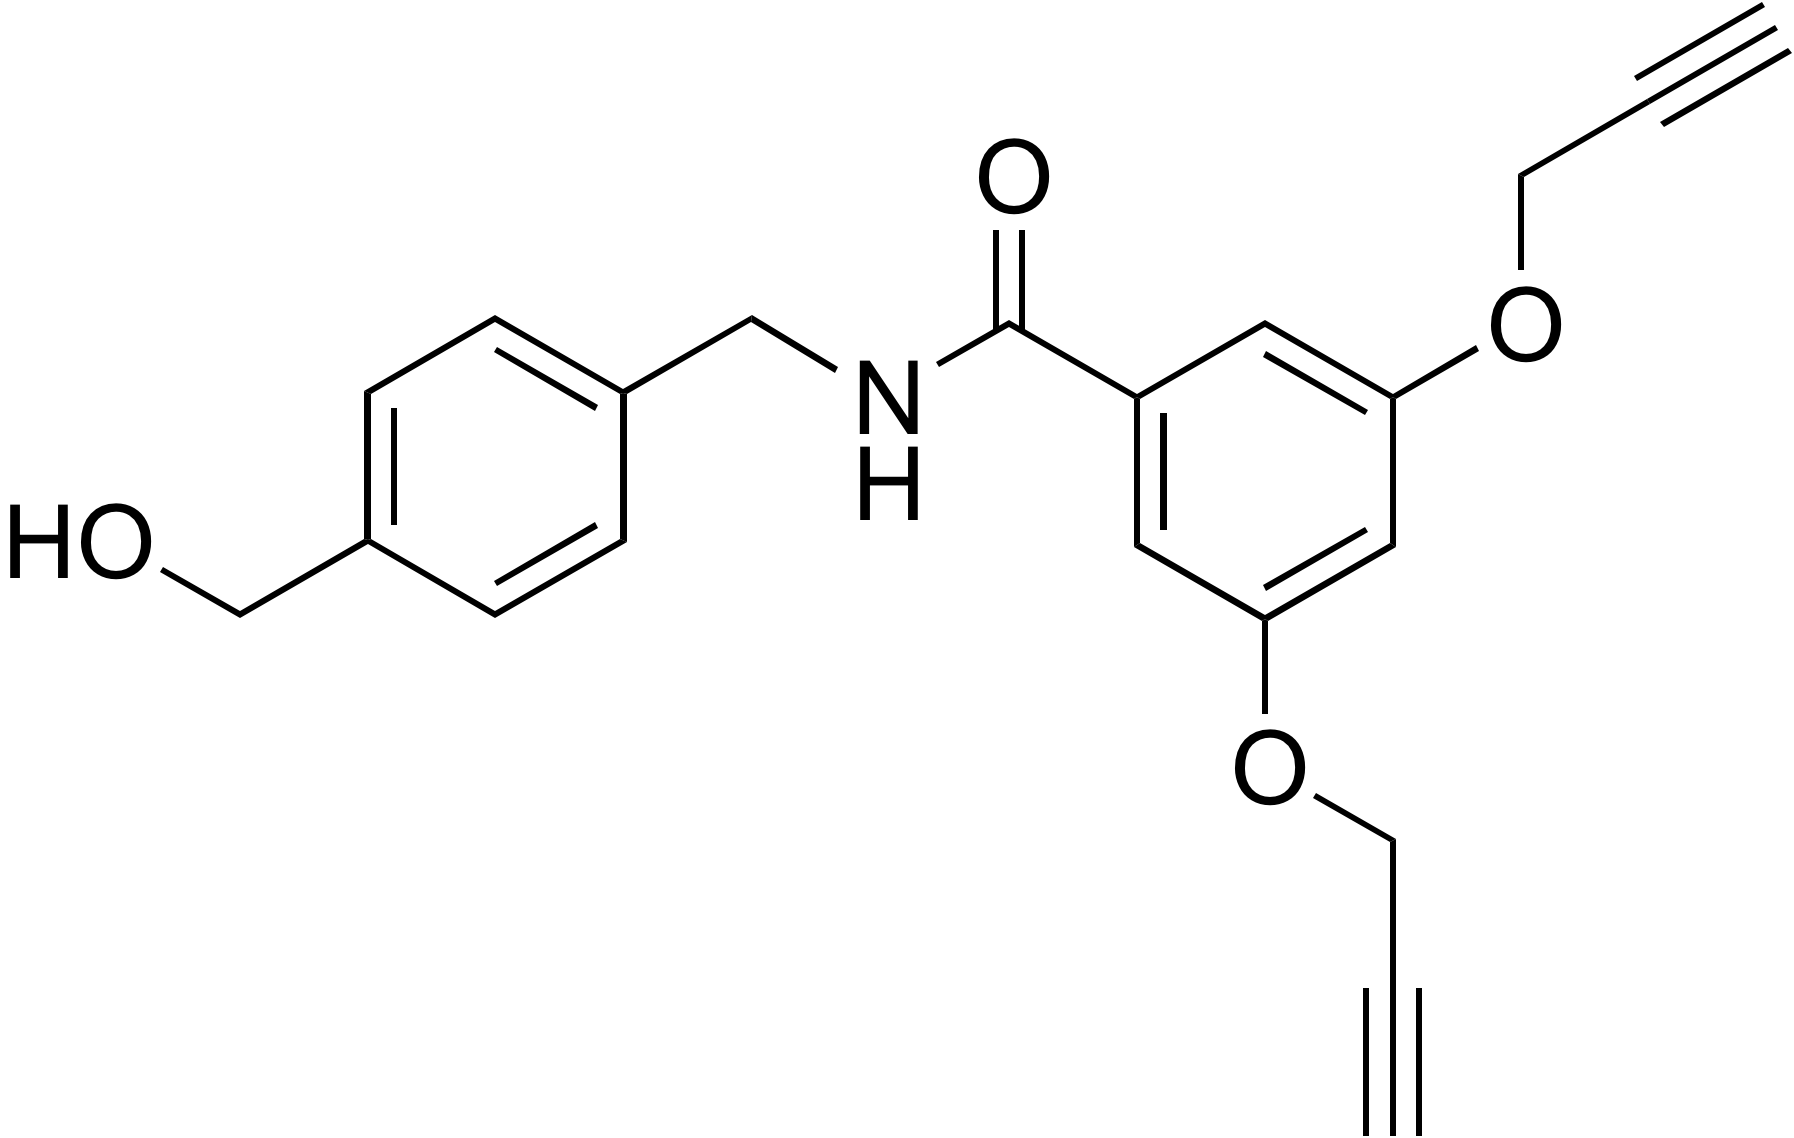 N-(4-(Hydroxymethyl)benzyl)-3,5-bis(prop-2-yn-1-yloxy)benzamide